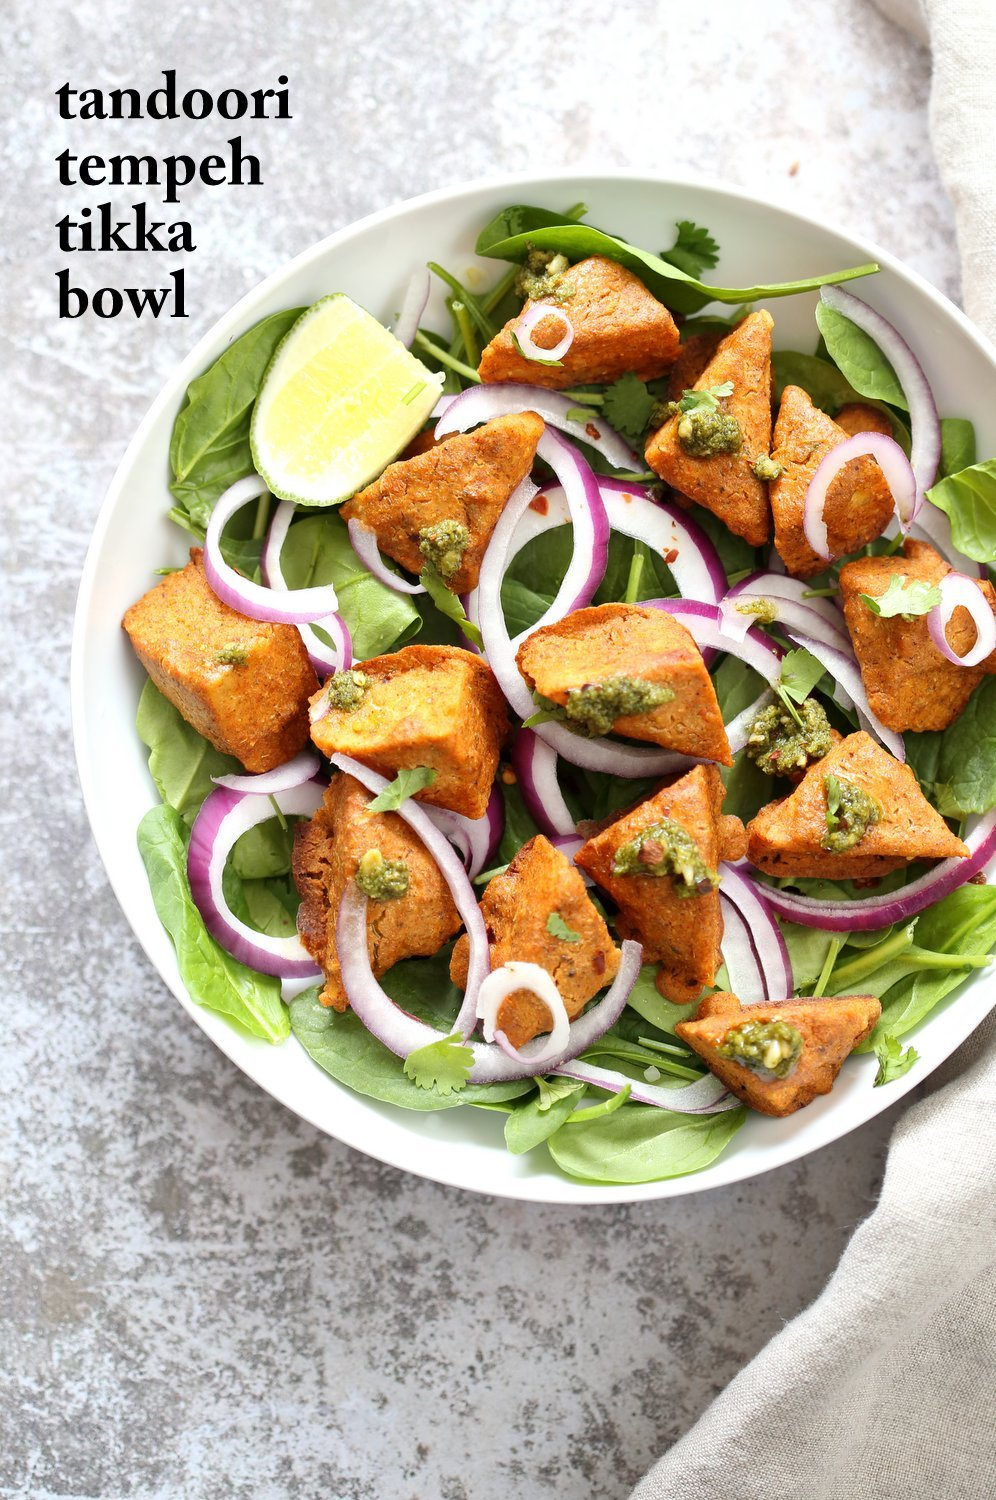 Tempeh Tandoori Tikka - Kabab Bowl with Cilantro Mint Chutney. 25 gm of Protein. Tempeh marinated in Delicious and Flavorful Tandoori Marinade, then baked and served over greens, onions. #veganricha #Vegan #Glutenfree #Recipe. Use Veggies or vegan meat subs for #soyfree | VeganRicha.com